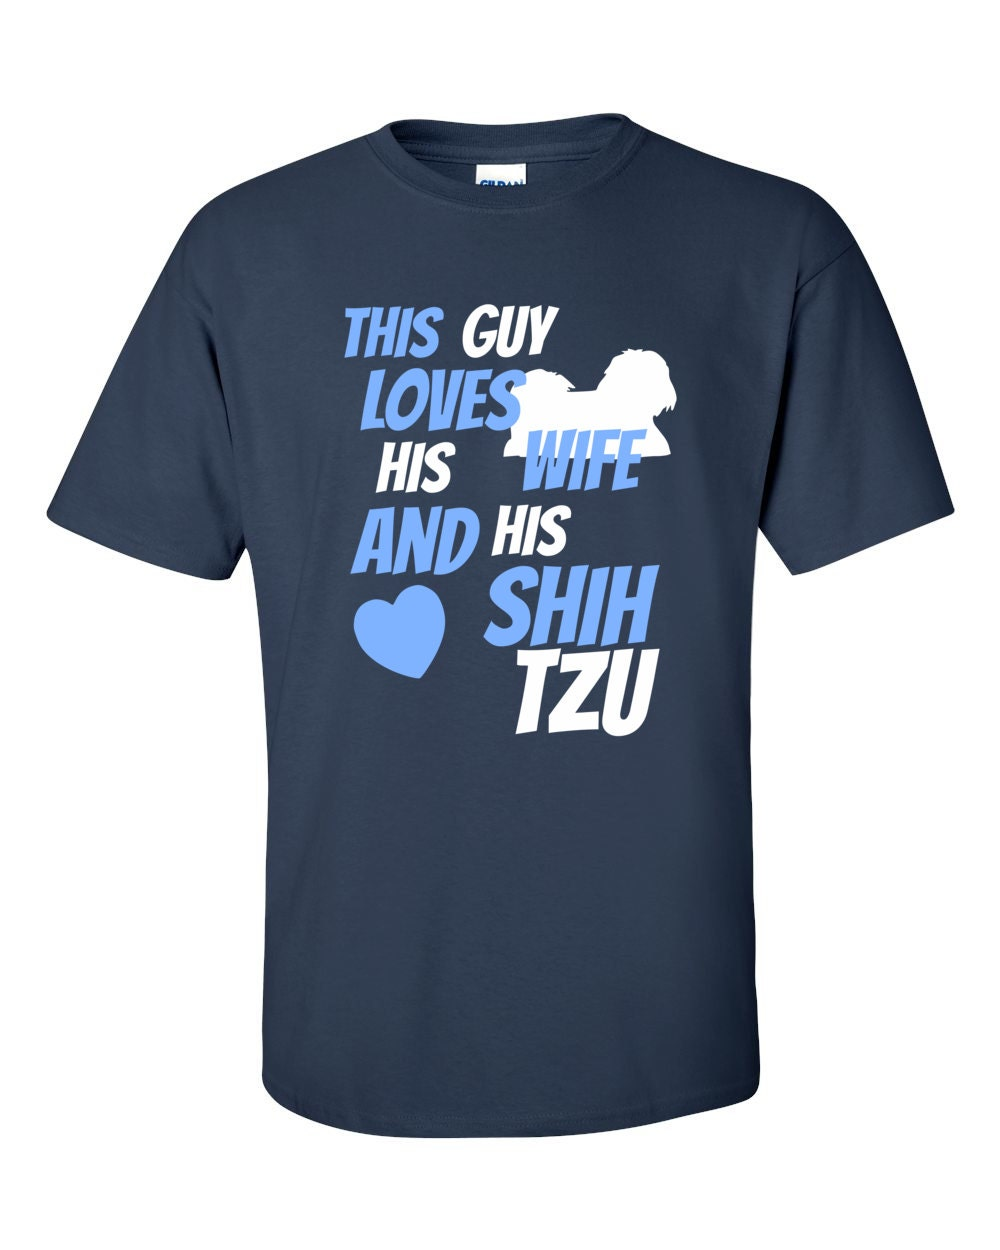 Only Shih Tzus - This Guy Loves His Wife And His Shih Tzu T-shirt